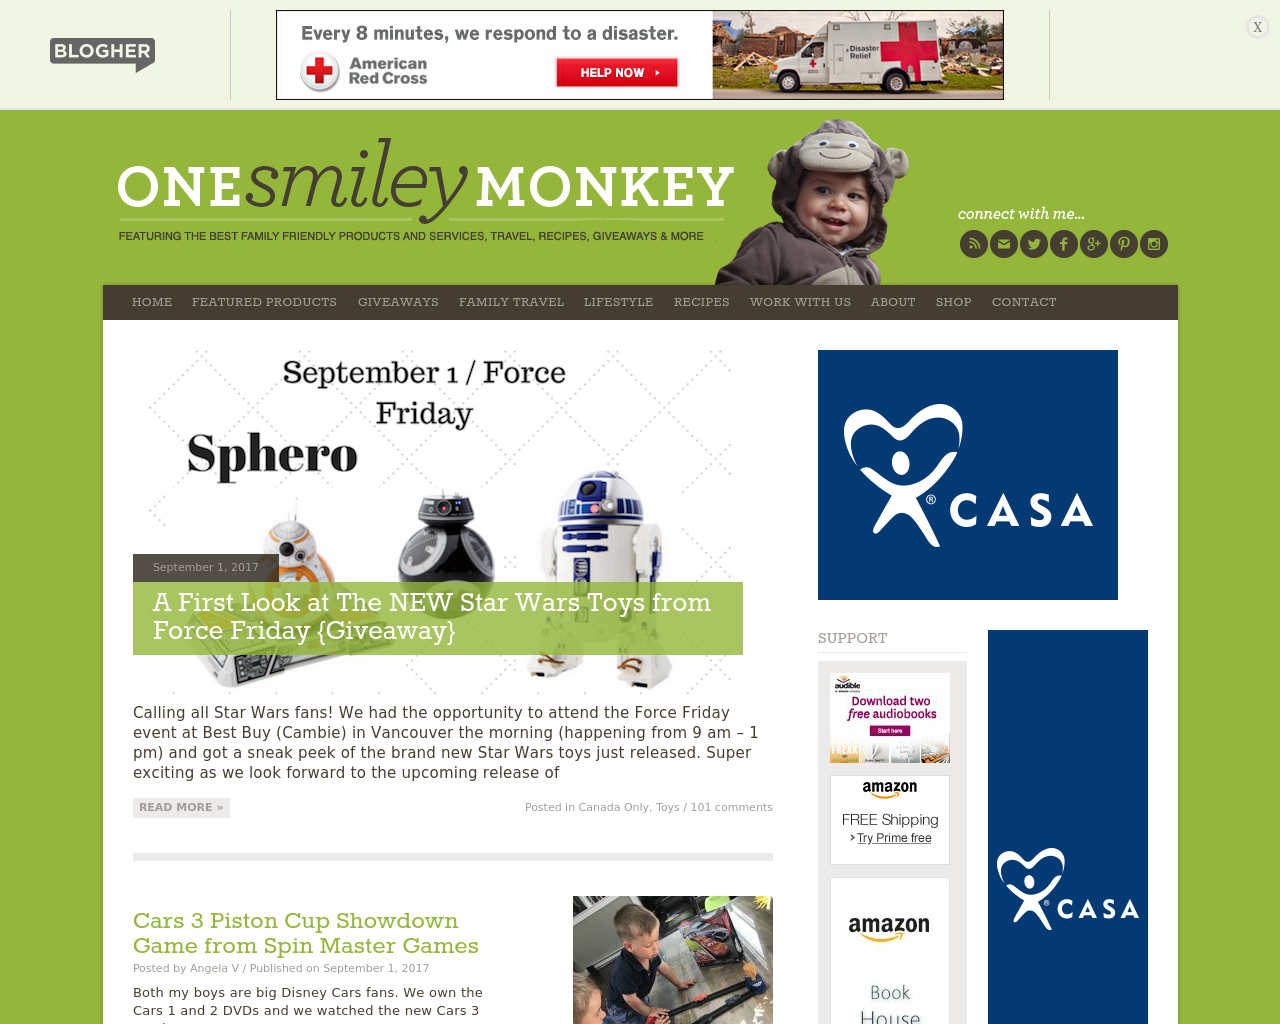 One-Smiley-Monkey-Advertising-Reviews-Pricing